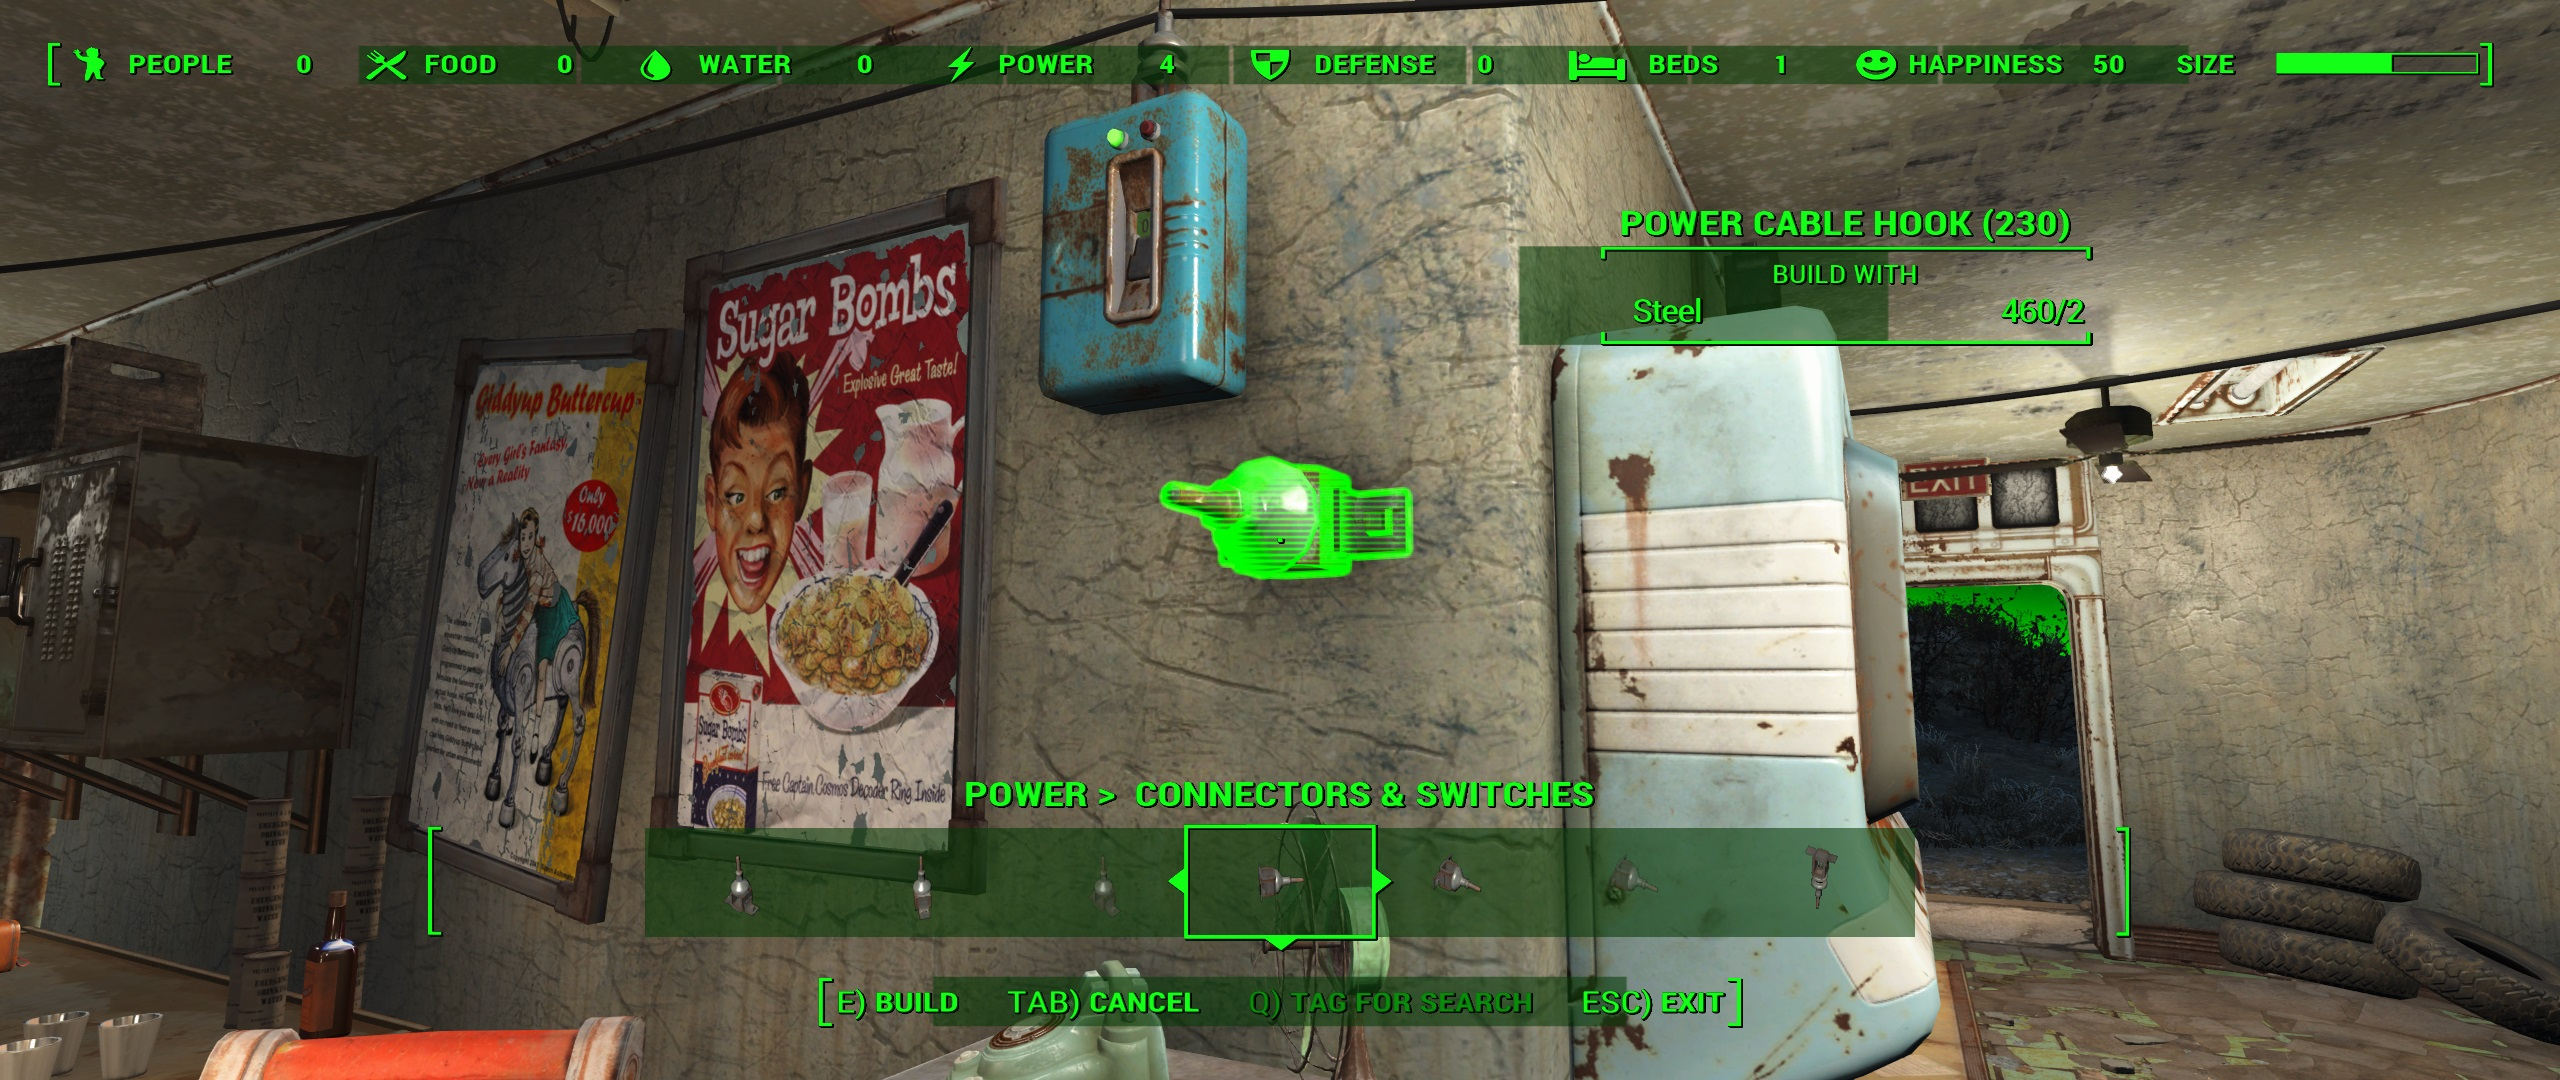 Fusebox Generator And Improved Indoor Conduits At Fallout 4 Nexus The Game Fuse Box Author Images